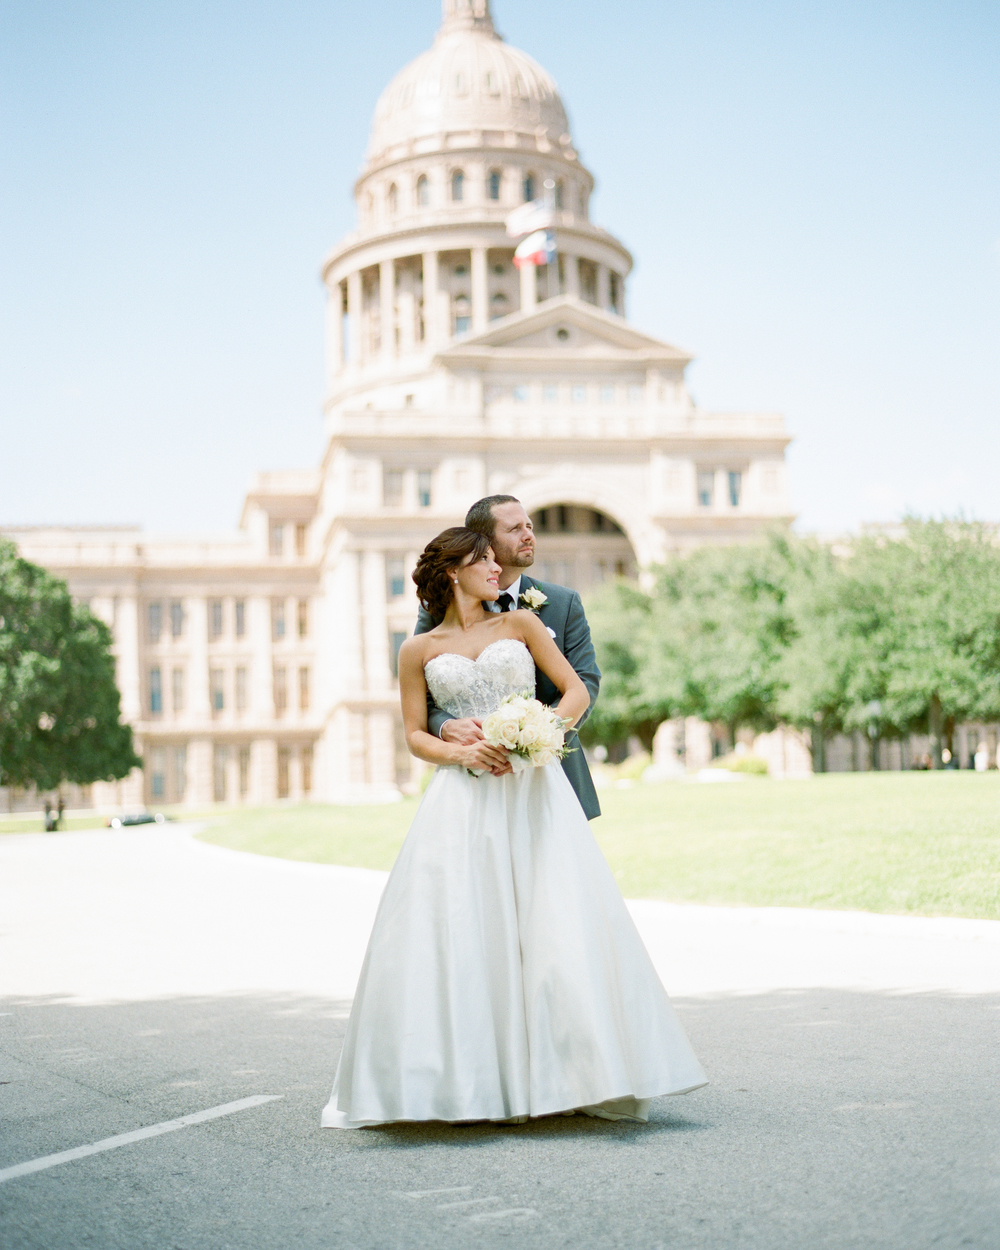 Dallas Wedding Photographer 016.JPG